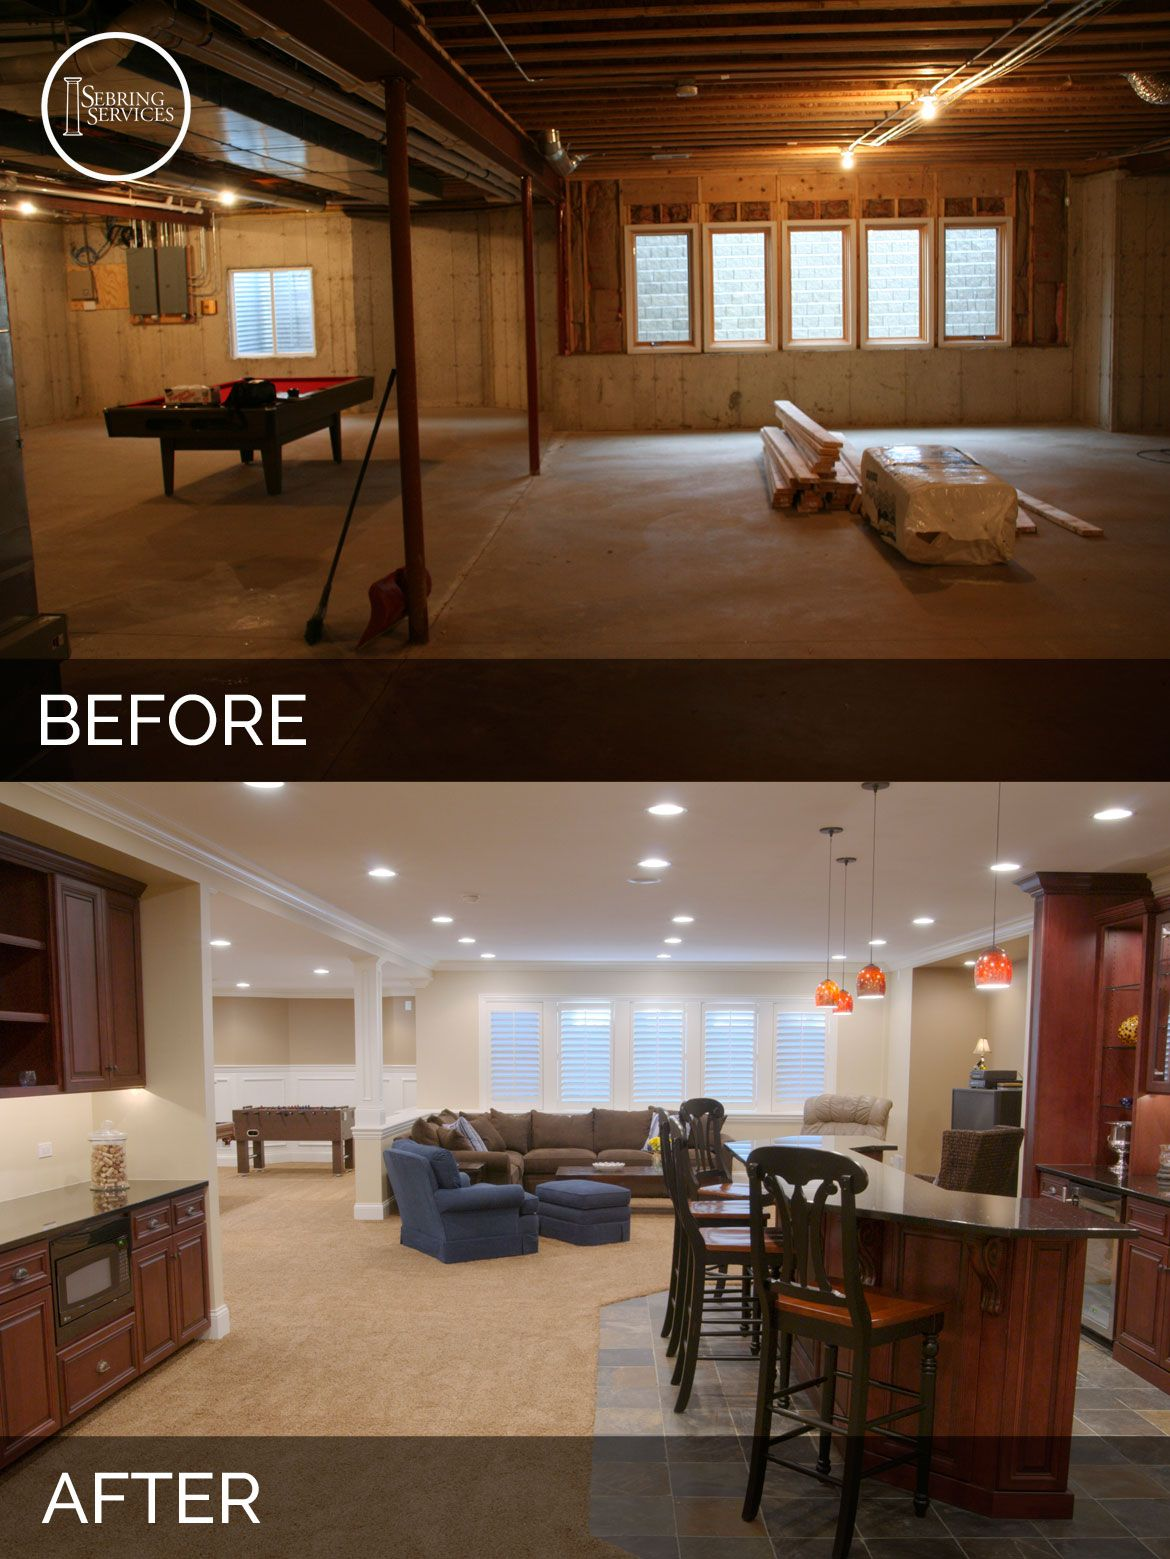 finished basement ideas before and after. Before and After Basement Remodeling  Sebring Services Steve Elaine s Pictures Basements